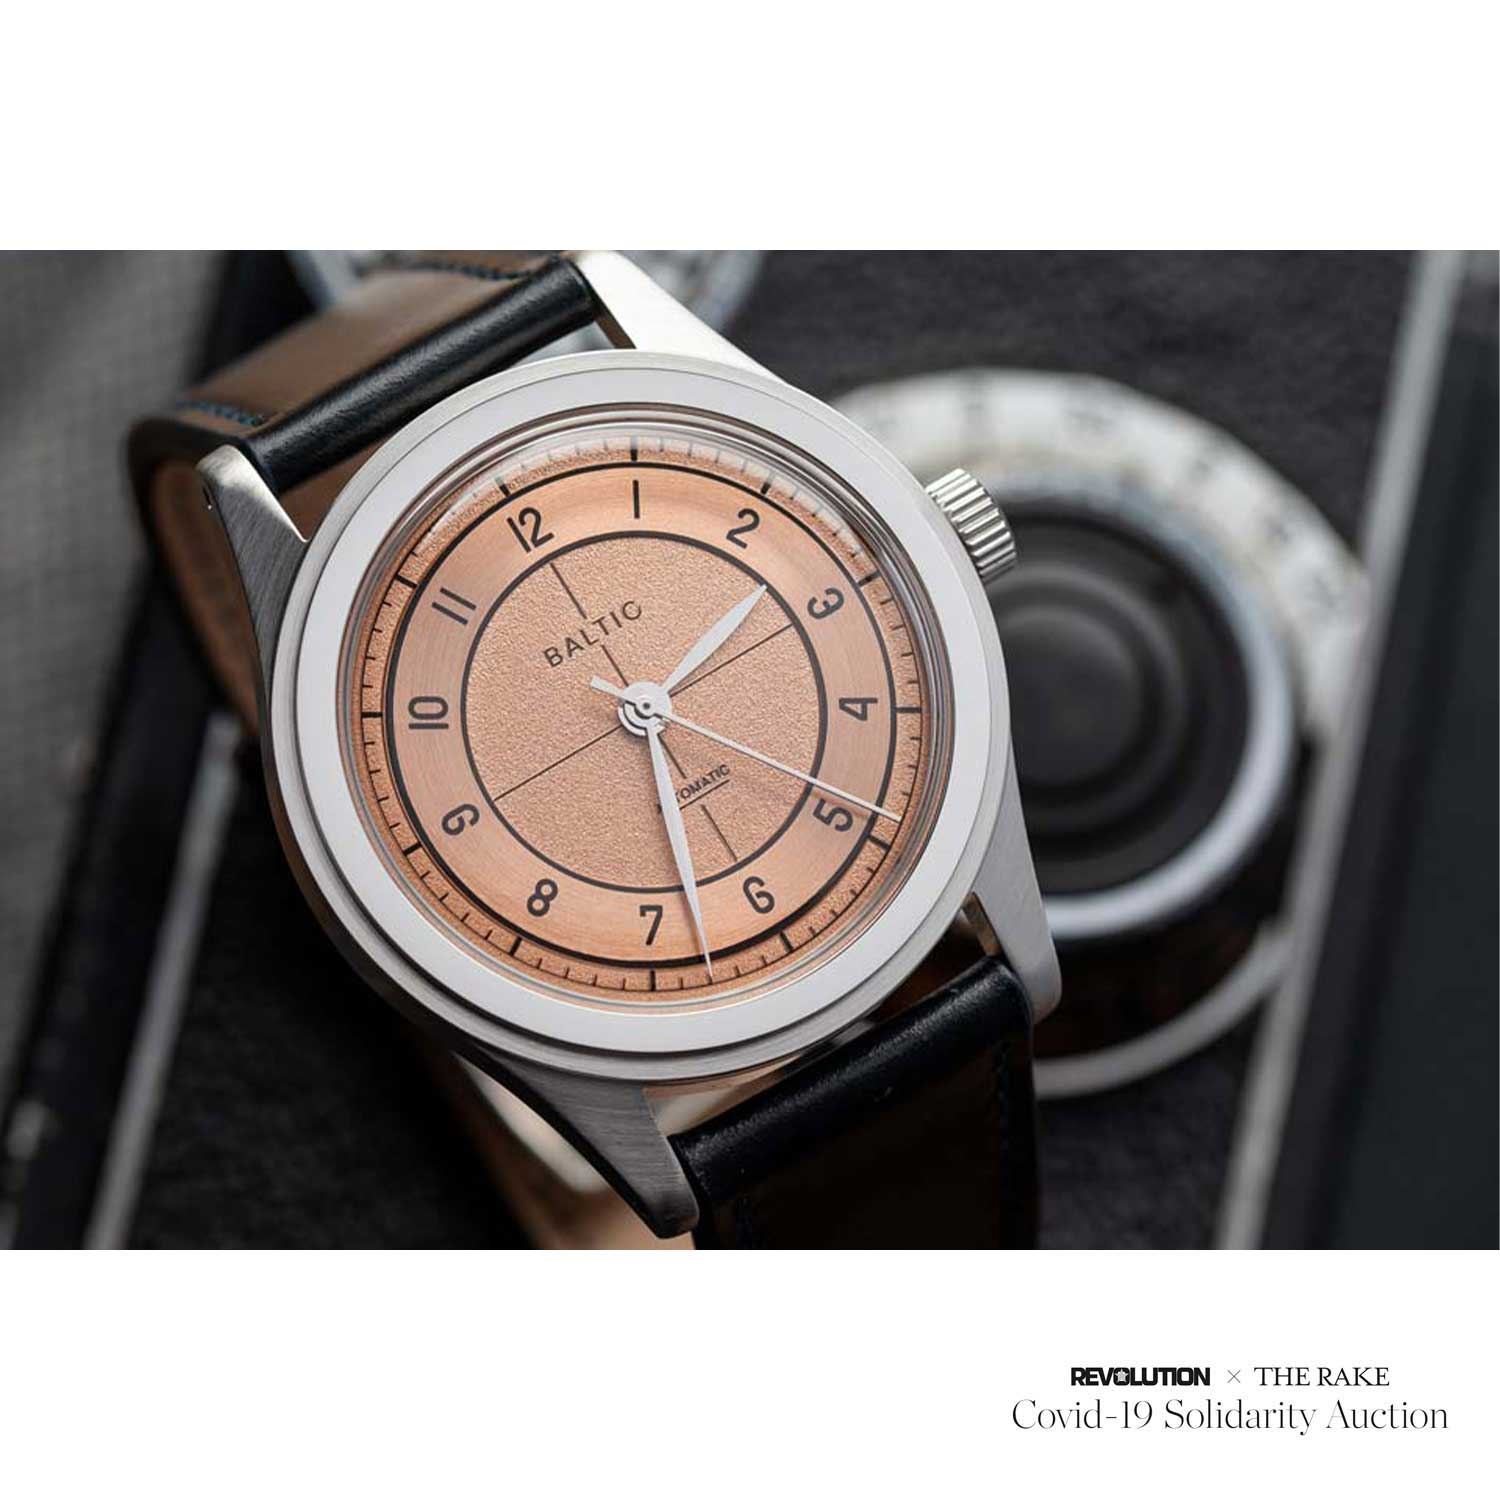 Personal Baltic x Worn & Wound Limited Edition with Salmon Sector Dial donated by @hands.faces.cases for Revolution x The Rake Covid-19 Solidarity Auction